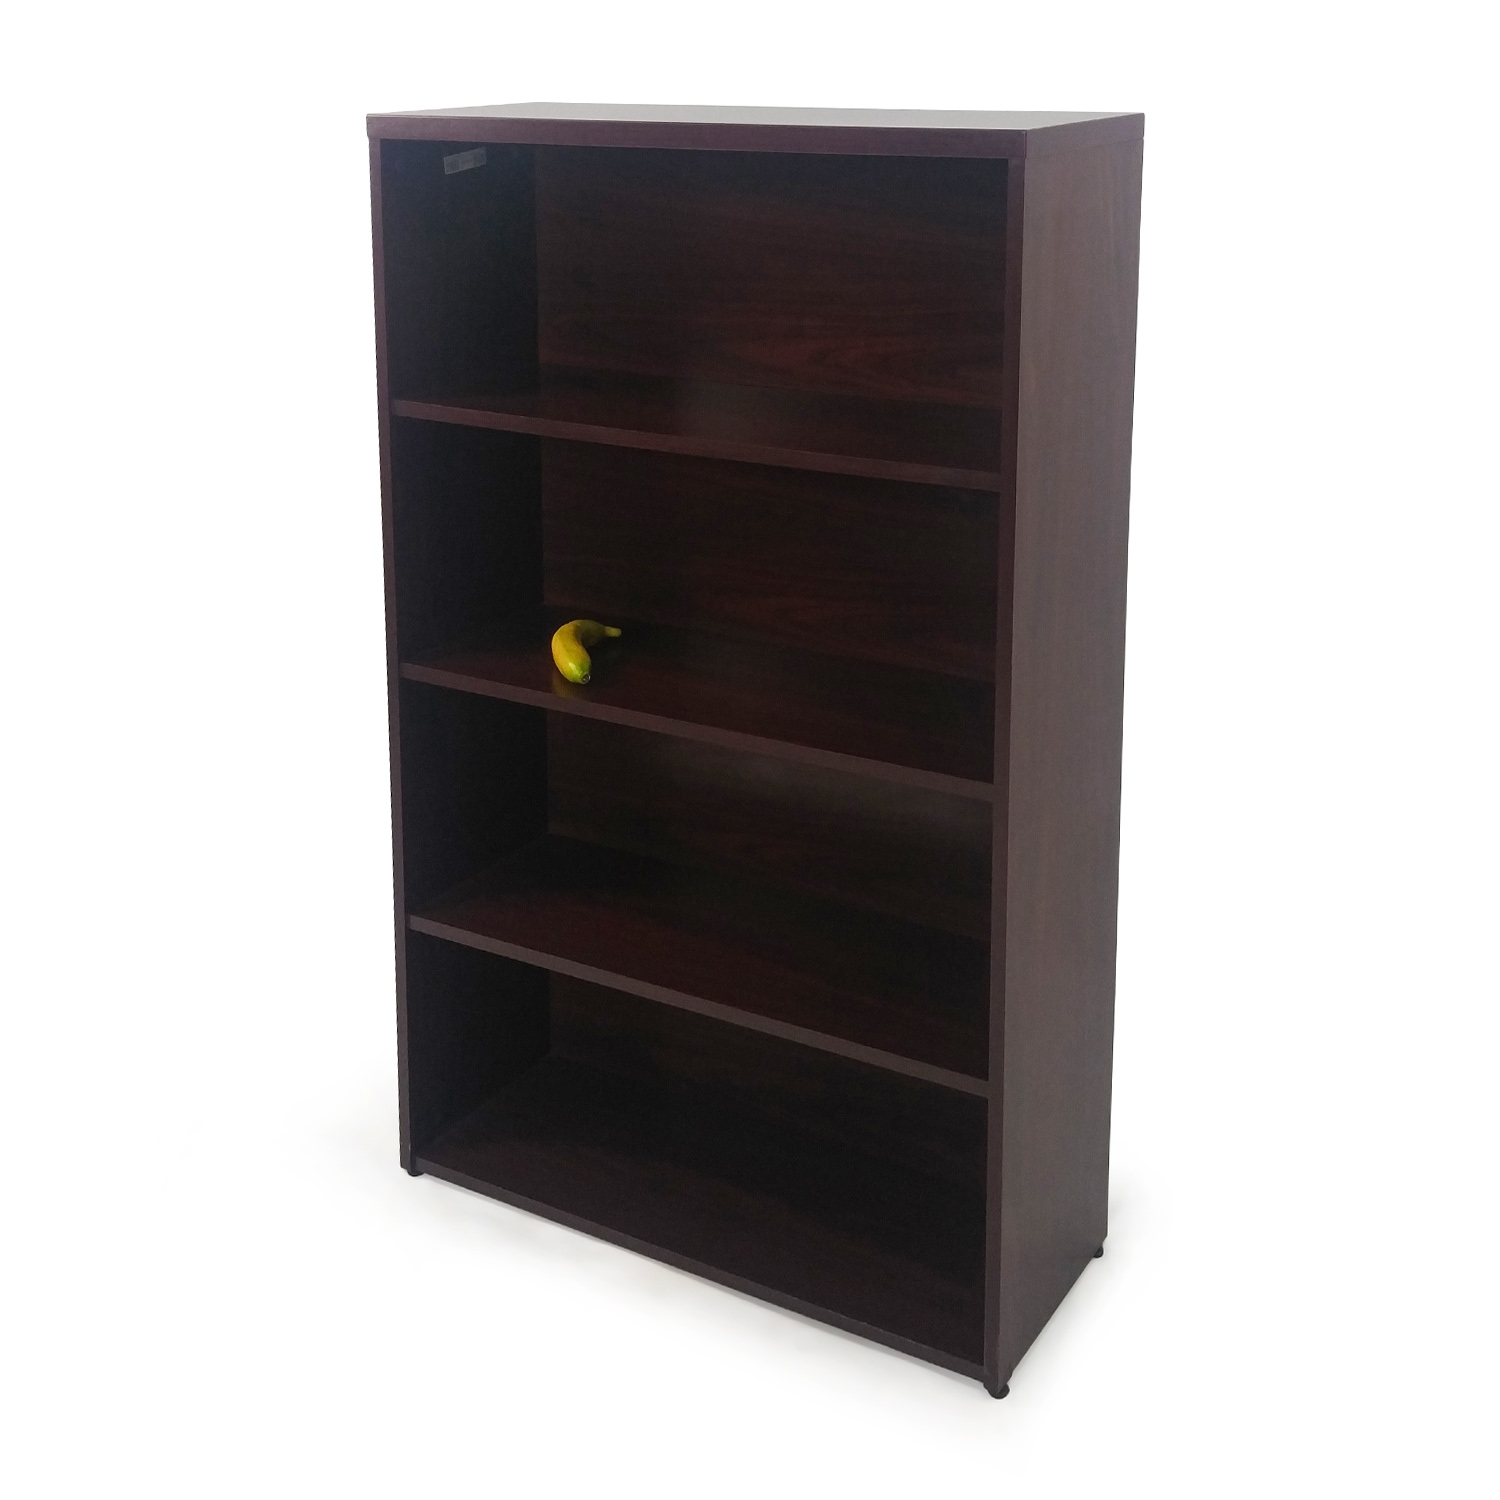 Off solid wood bookcase storage